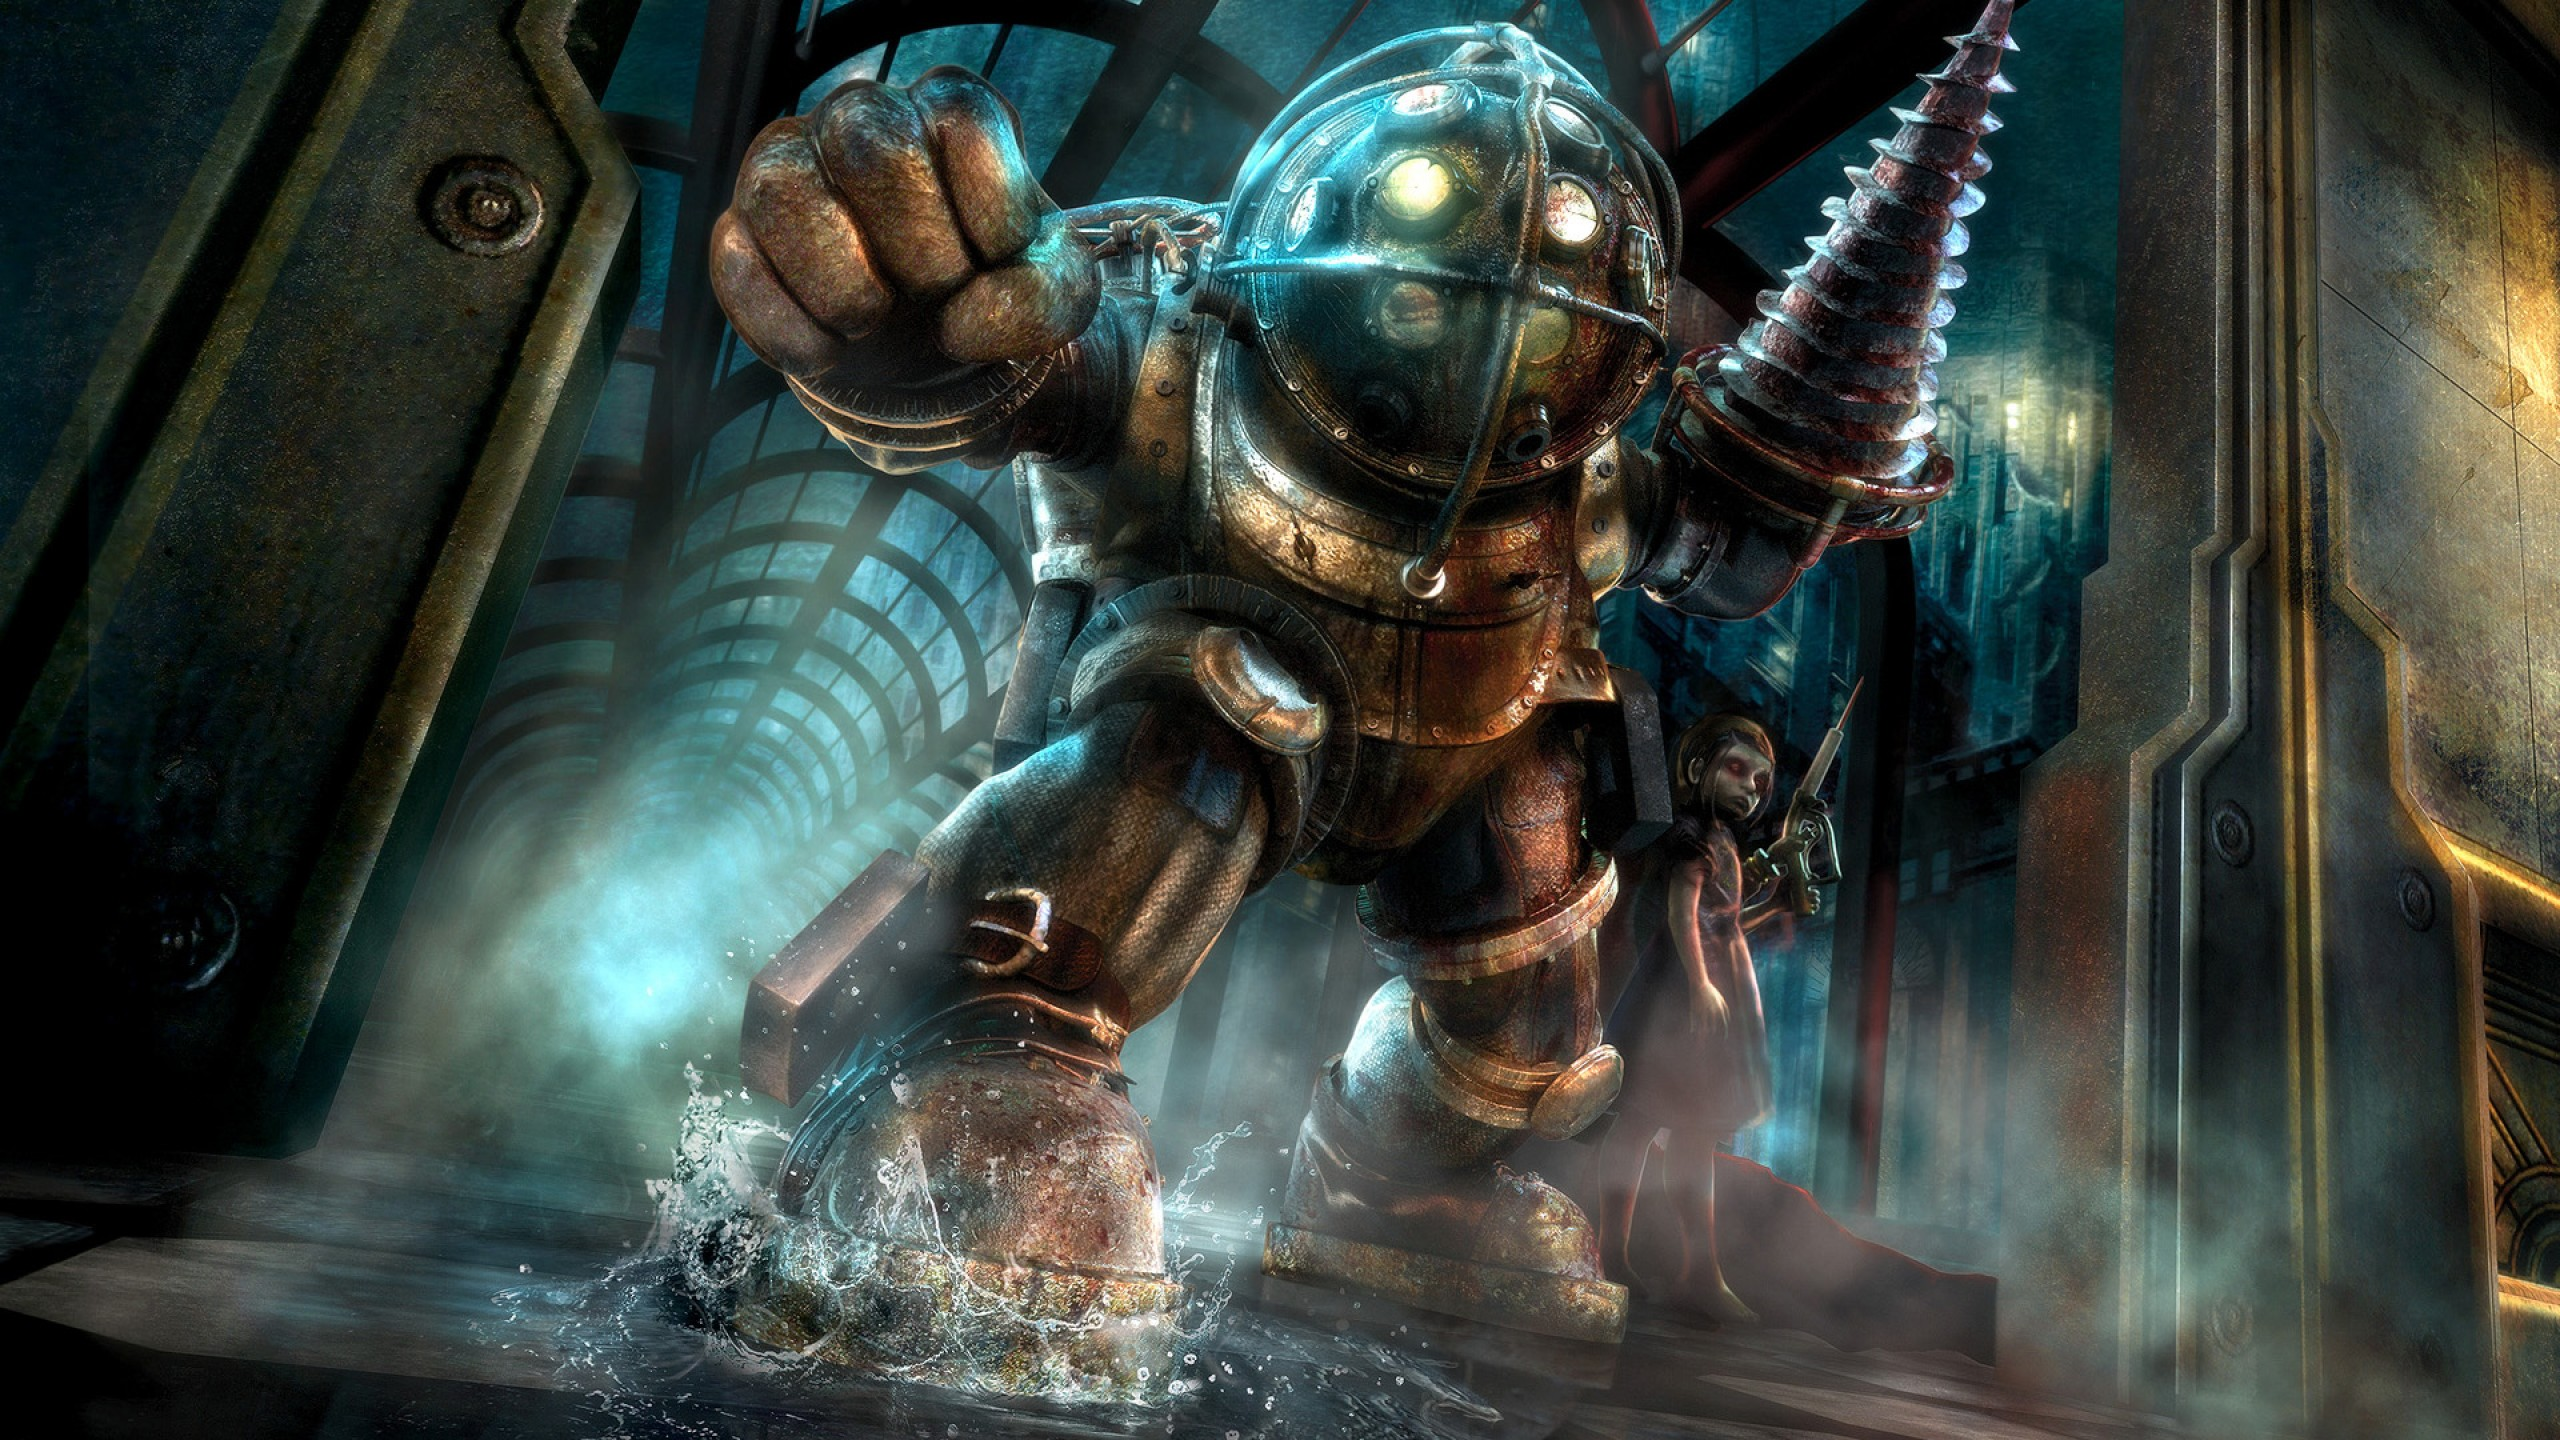 cool wallpapers photos Cool Games Wallpaper 2560x1440